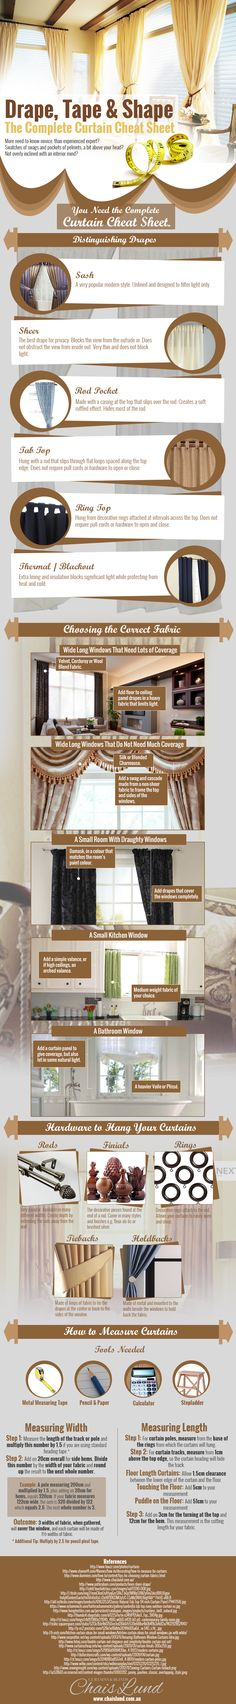 The Complete Curtain Cheat Sheet | Tipsaholic.com #home #decor #design #drapes #curtains #infographic